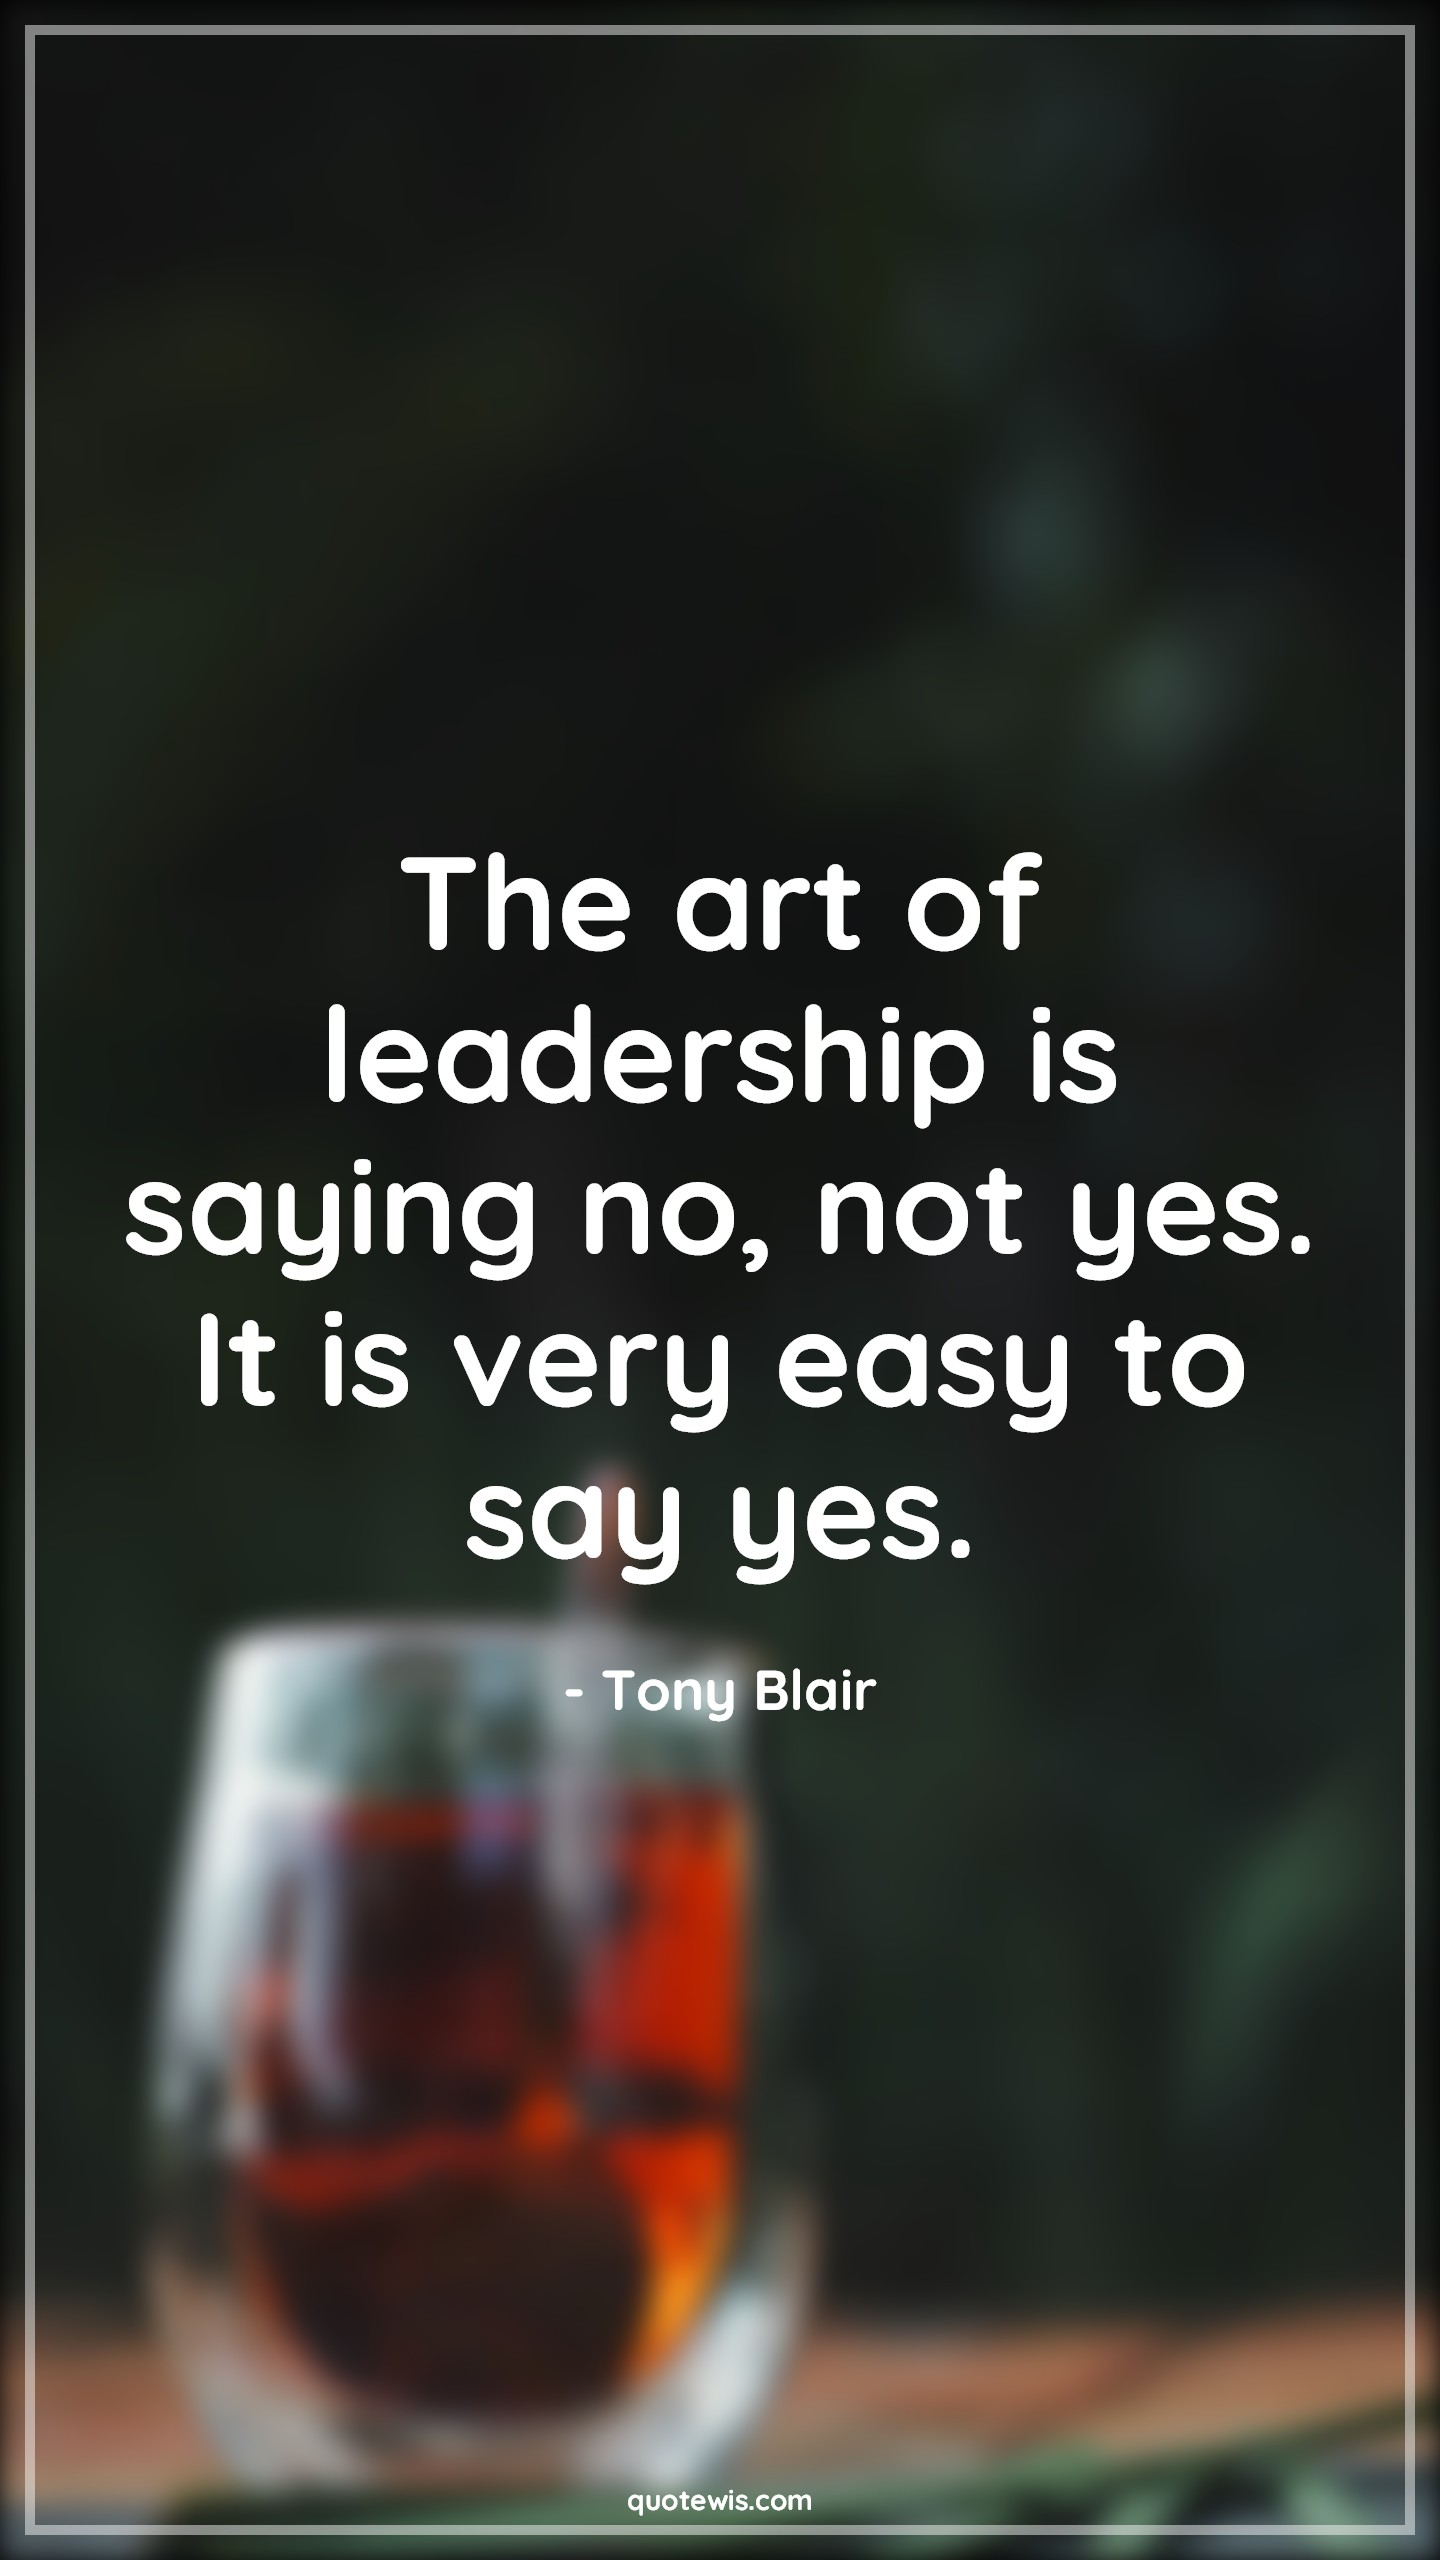 The art of leadership is saying no, not yes. It is very easy to say yes.